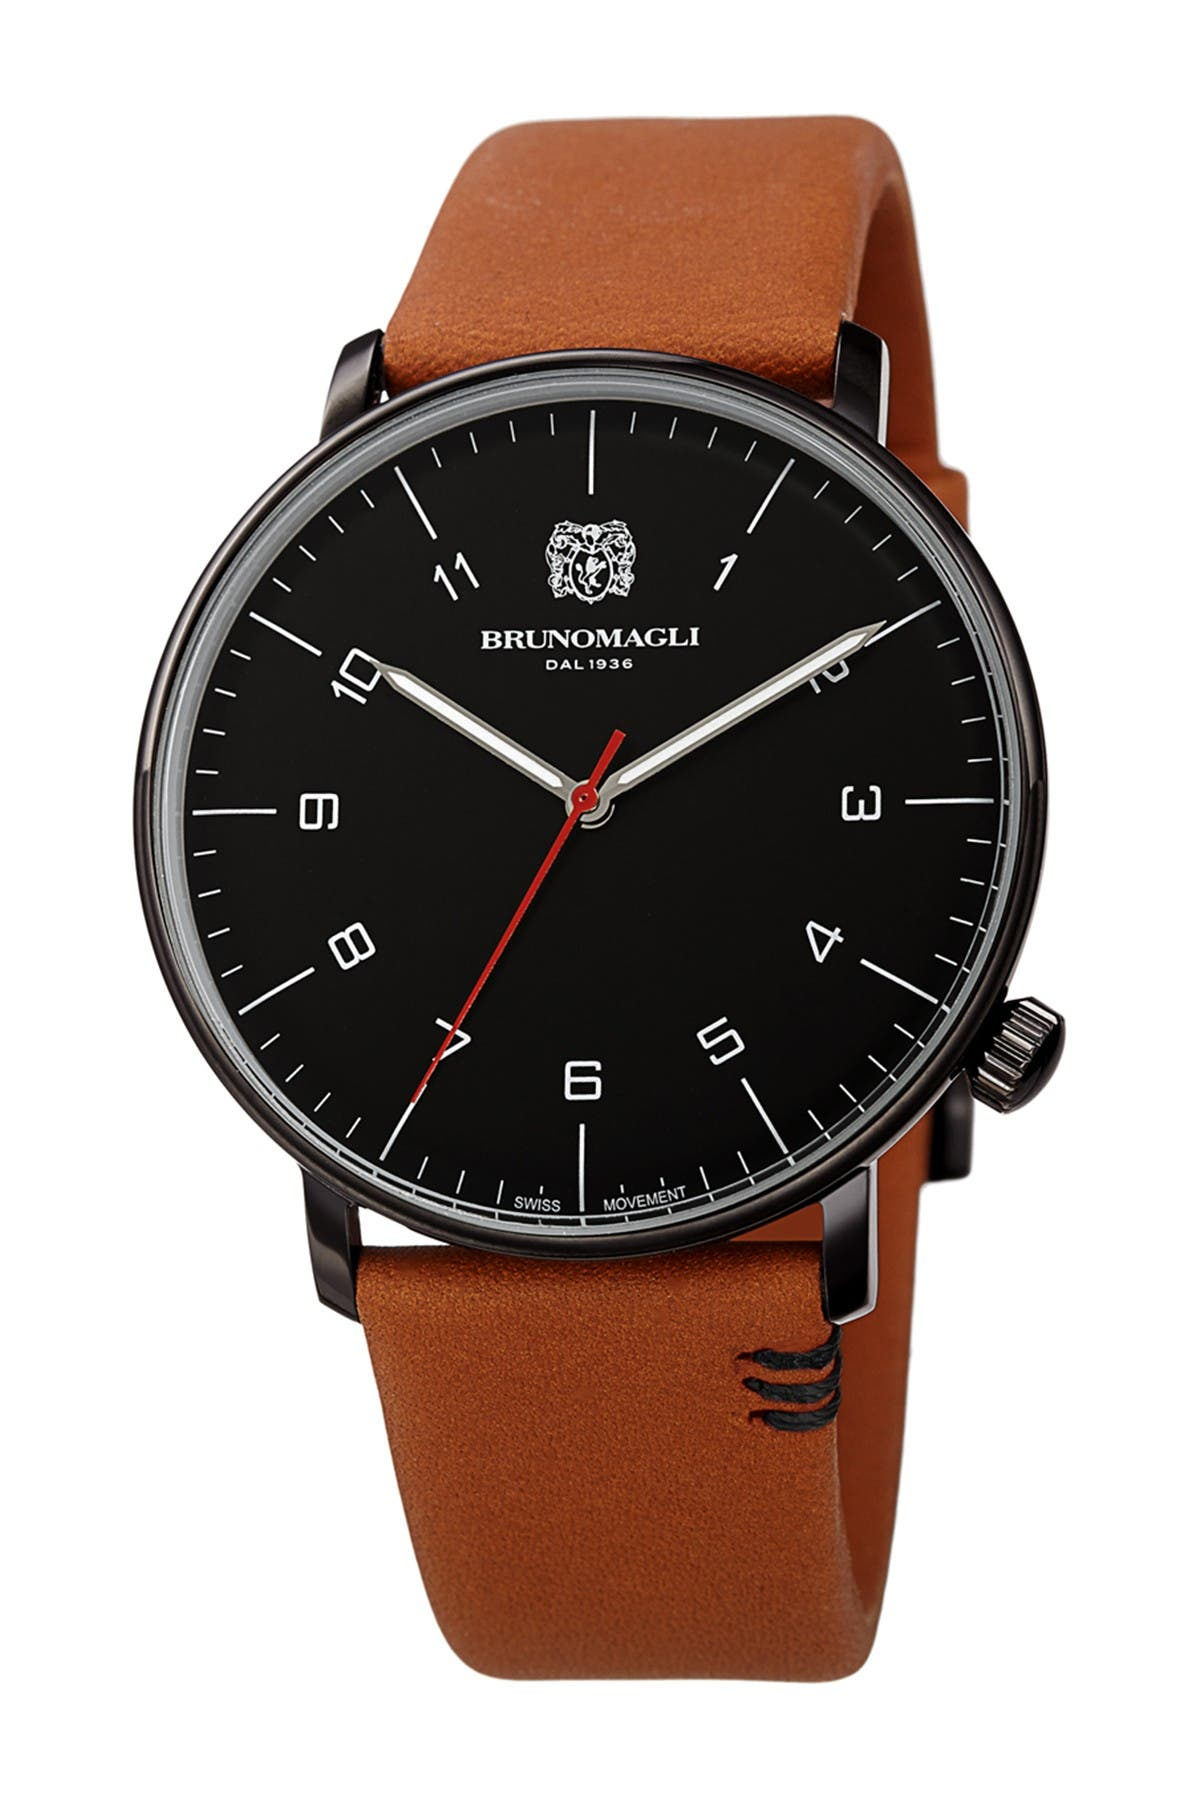 Image of Bruno Magli Men's Roma Moderna Leather Strap Watch, 43mm